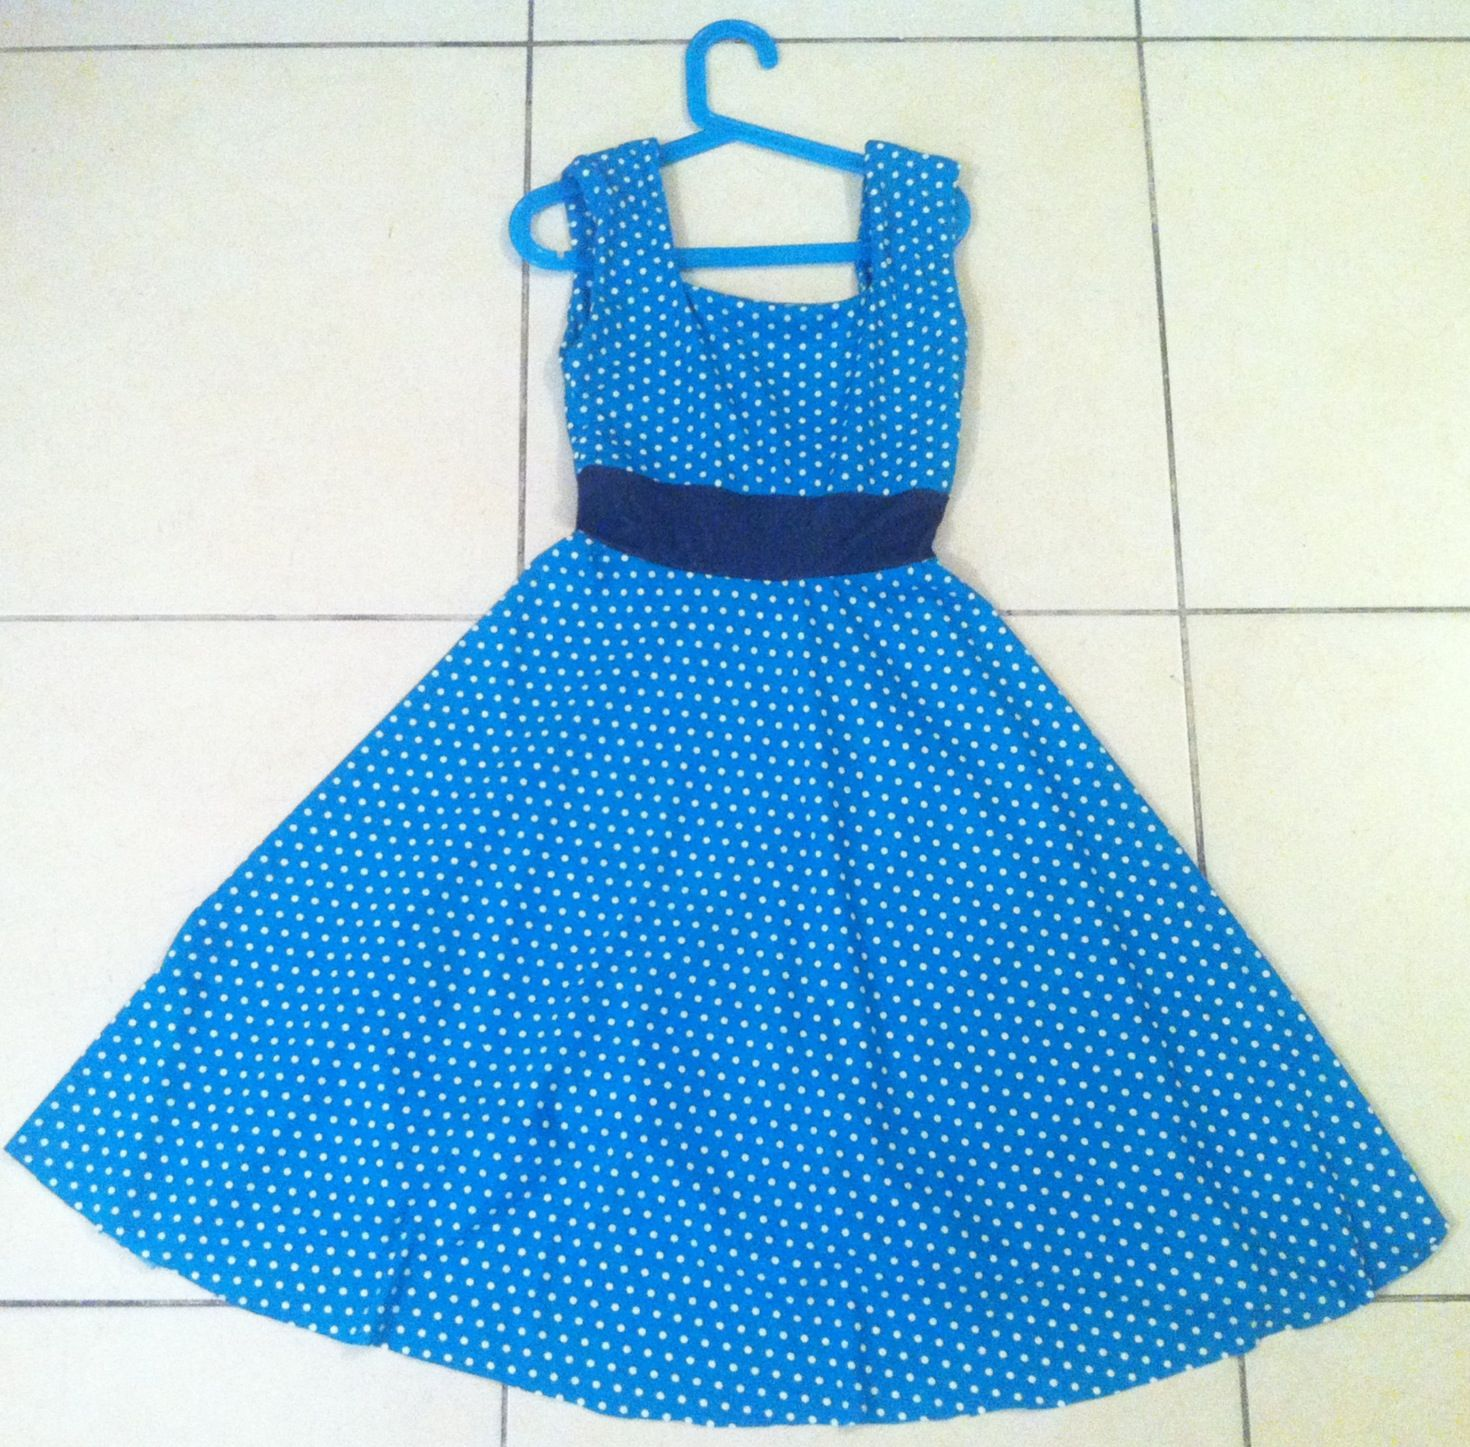 Craft ideas for 9 year old girls - Find This Pin And More On Craft My Homemade Dress For A 9 Years Old Girl